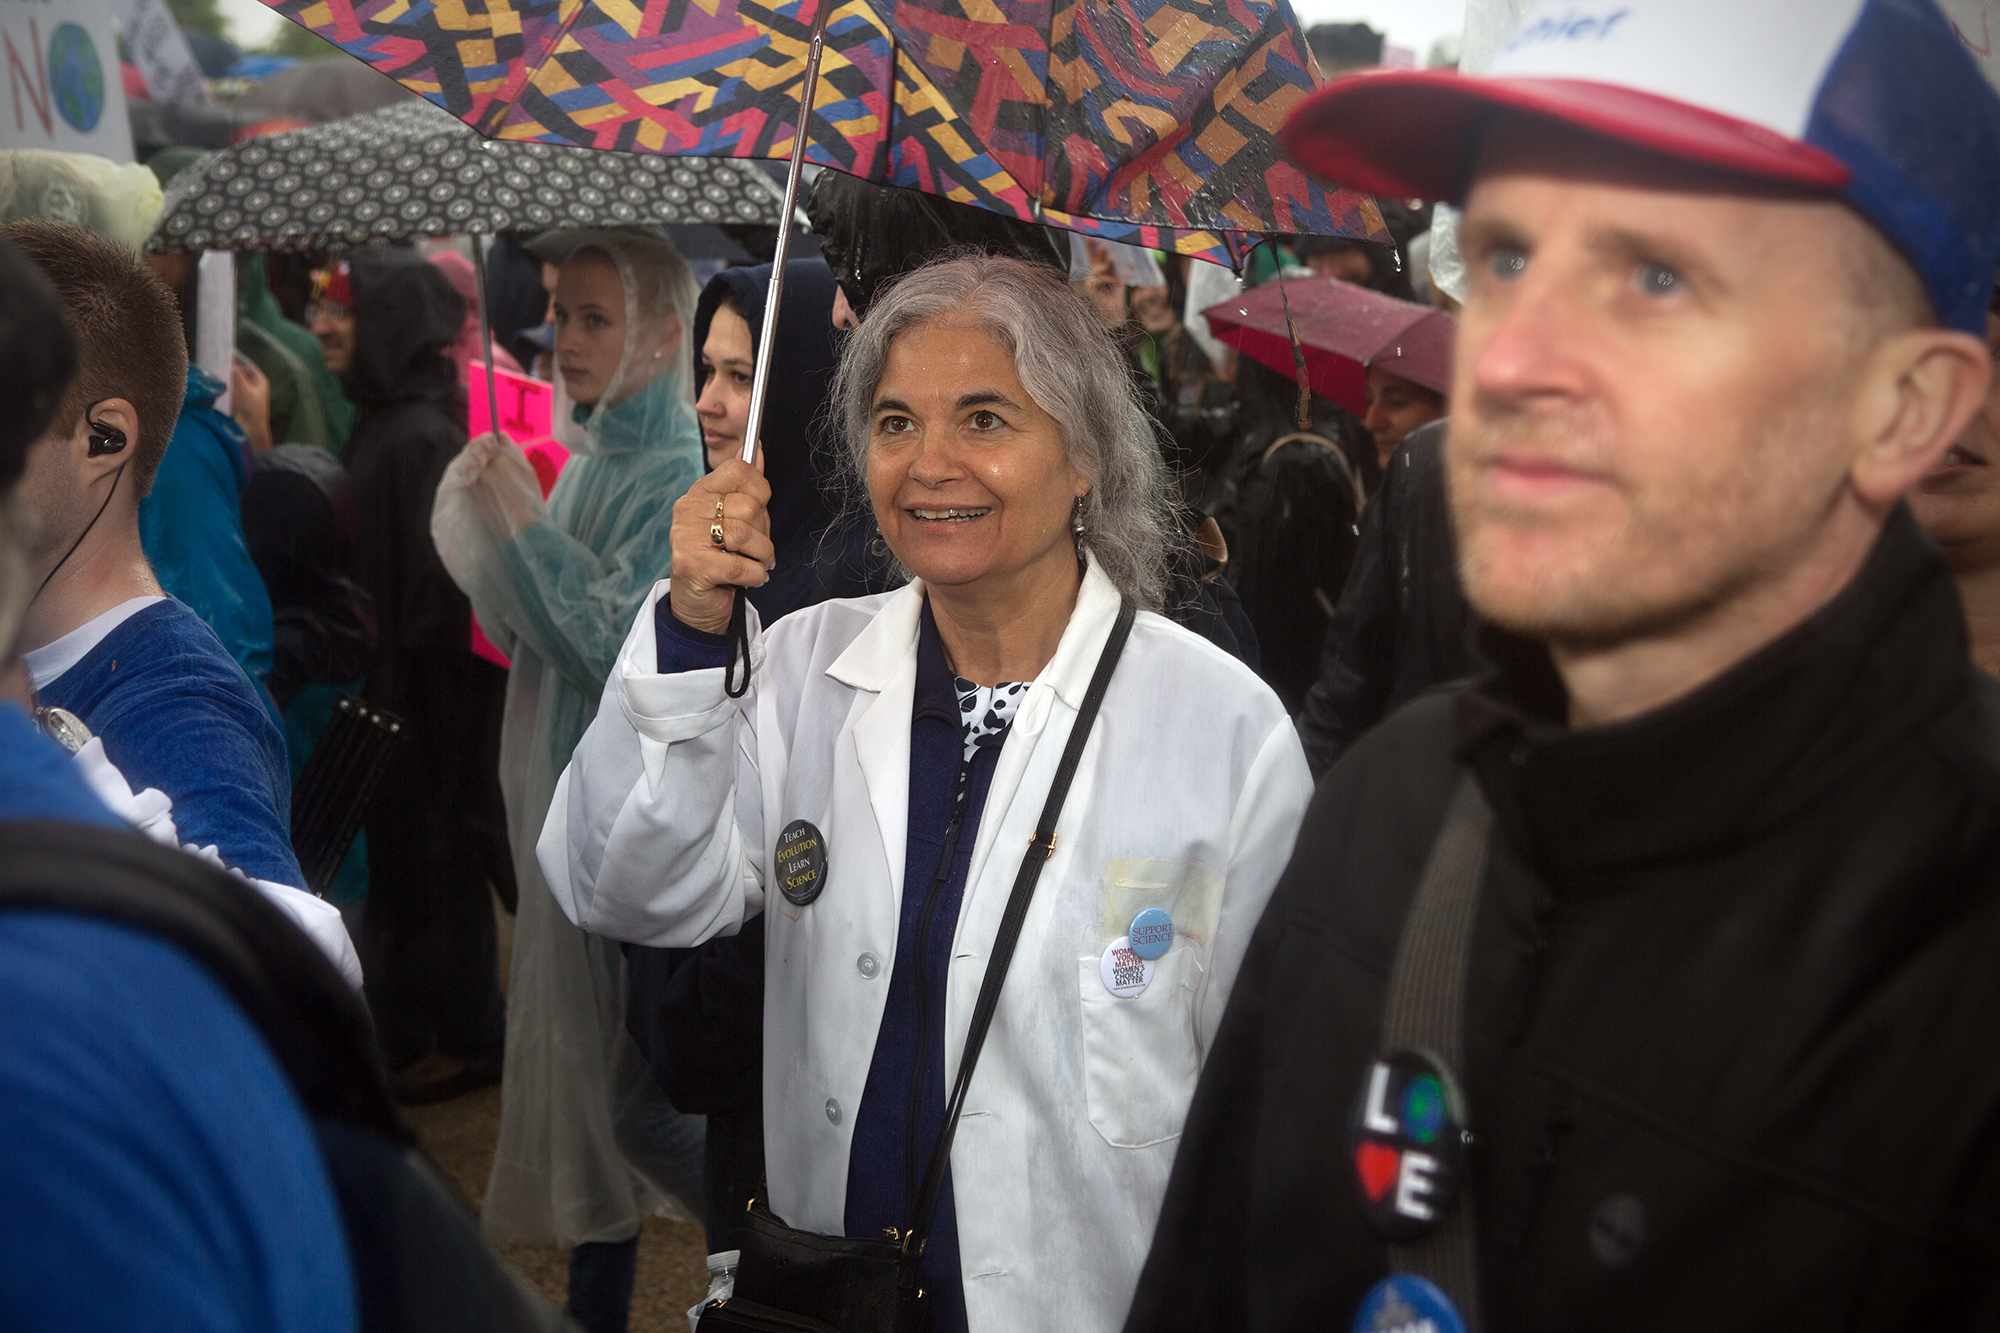 Doctor or scientistt Science March in DC.